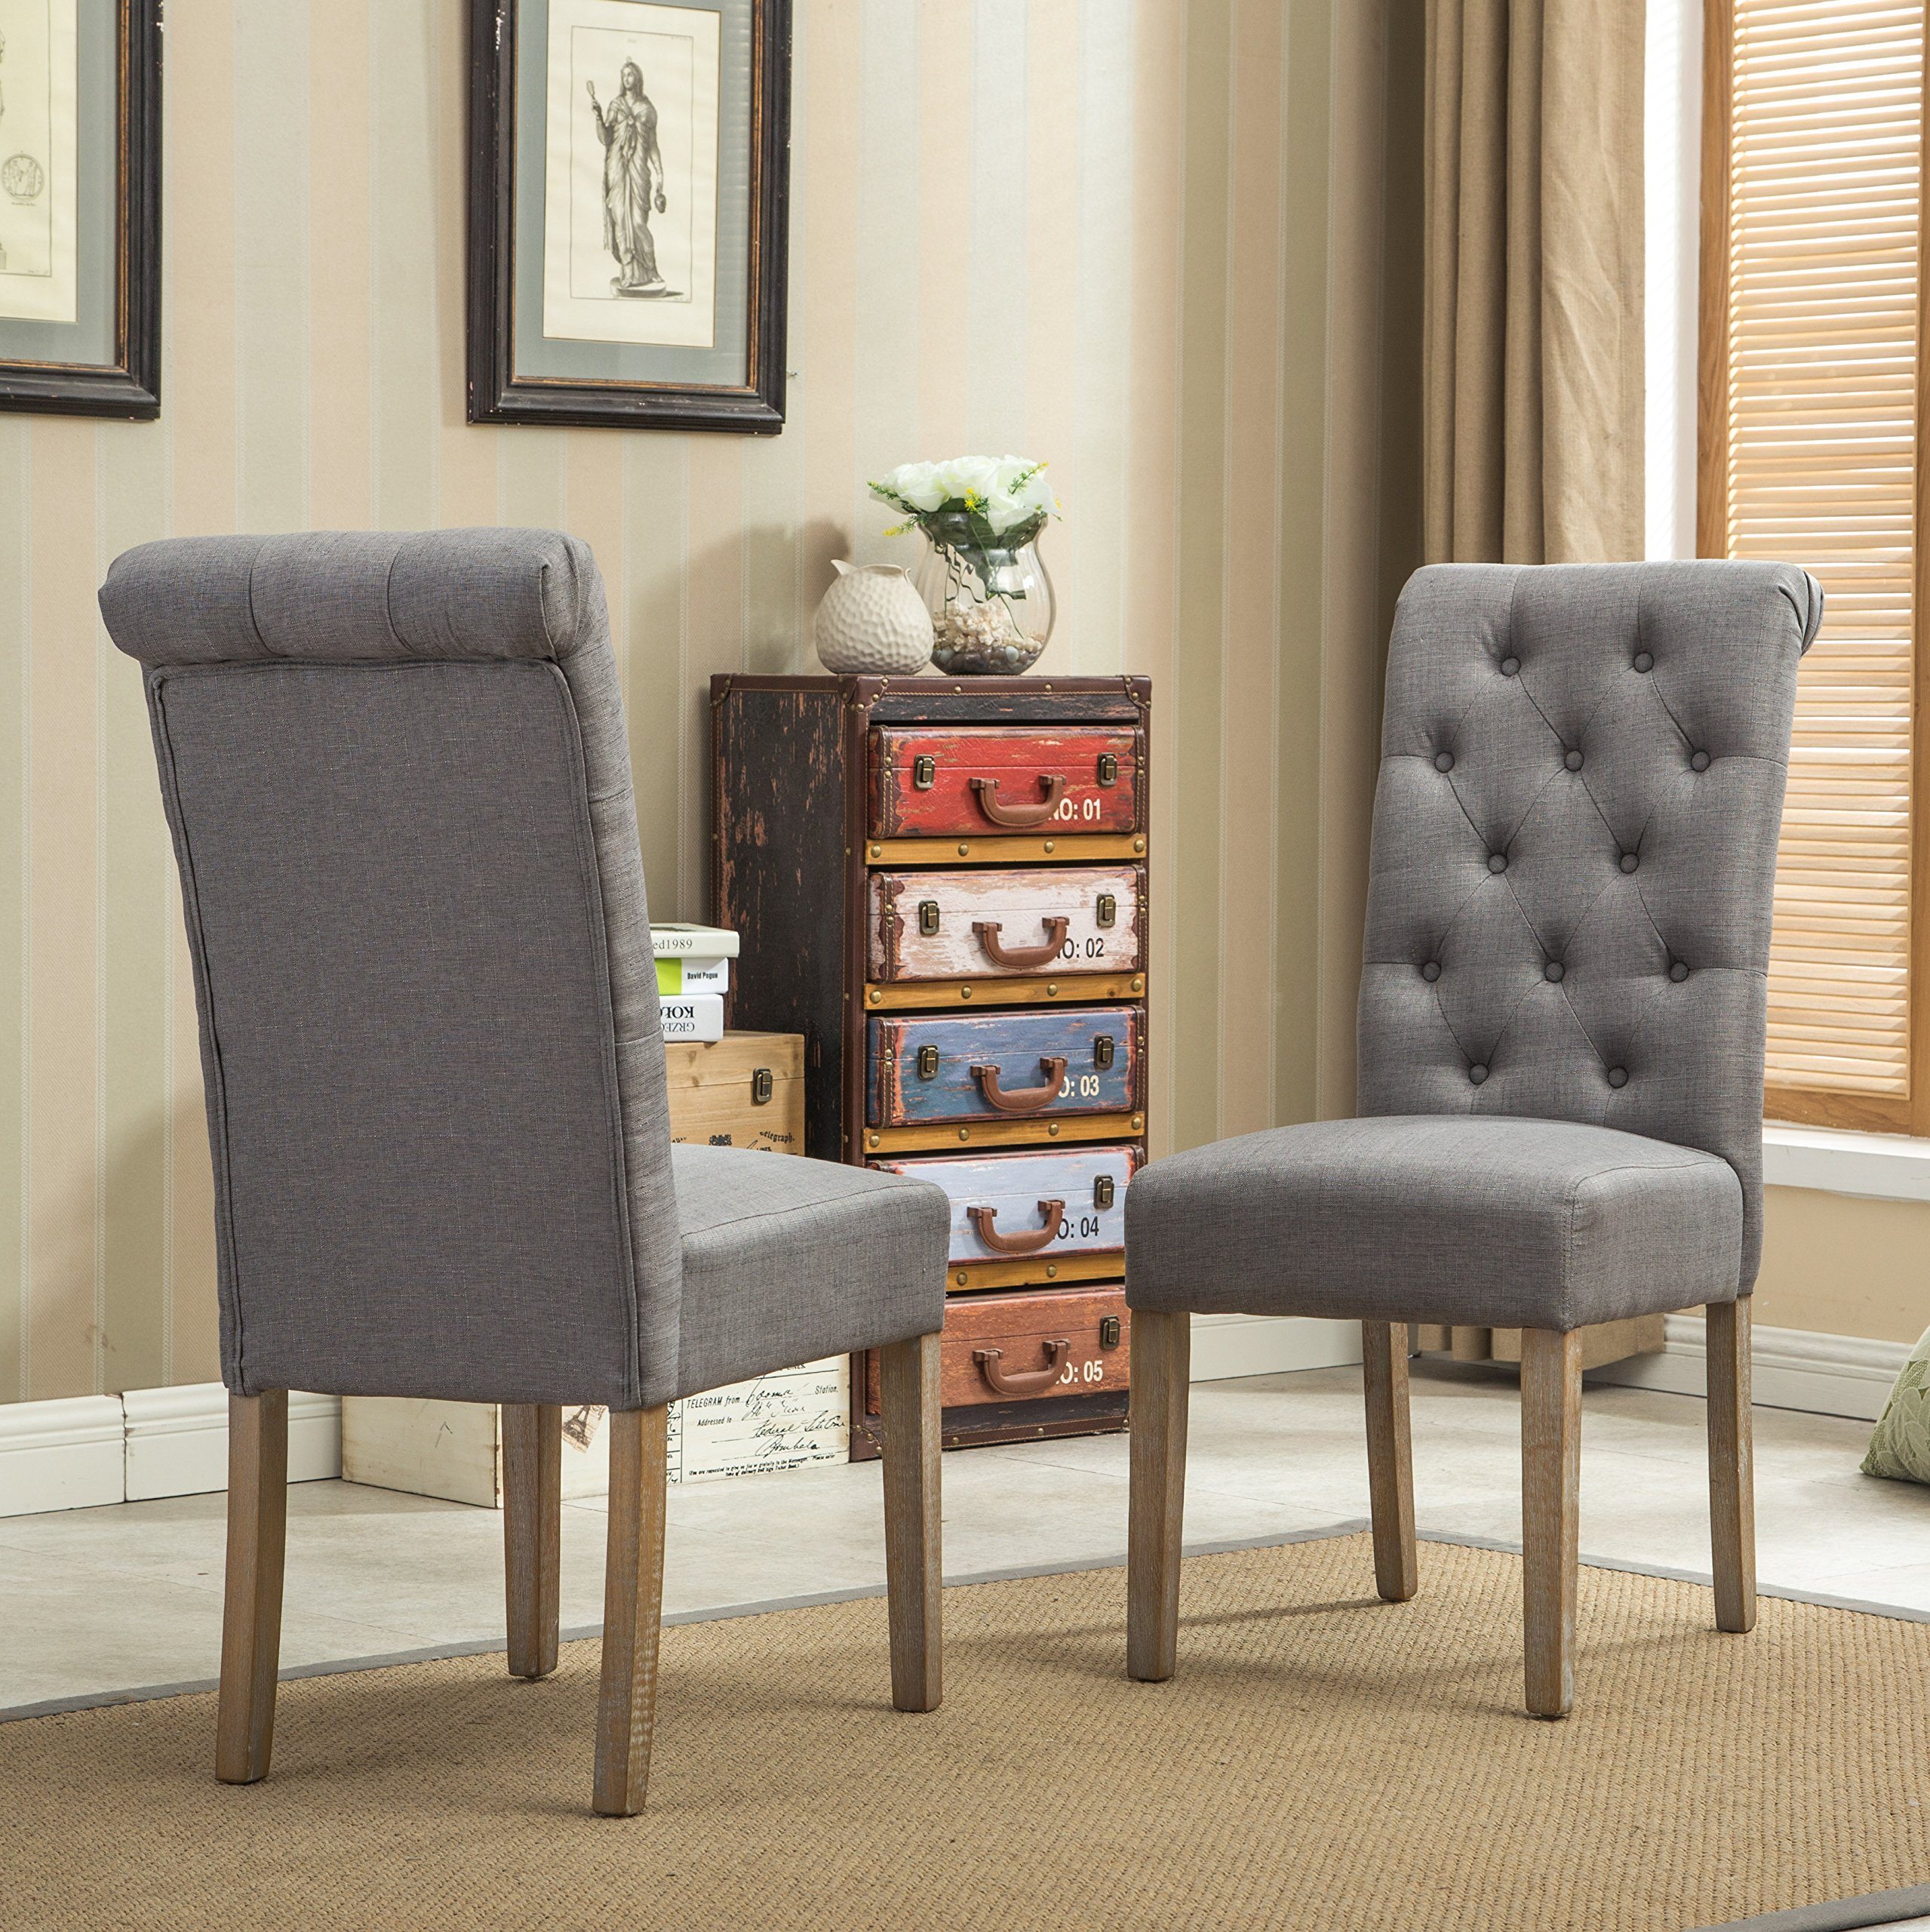 Roundhill Furniture Habit Grey Solid Wood Tufted Parsons Dining Chair (Set of 2), Gray by Roundhill Furniture (Image #4)